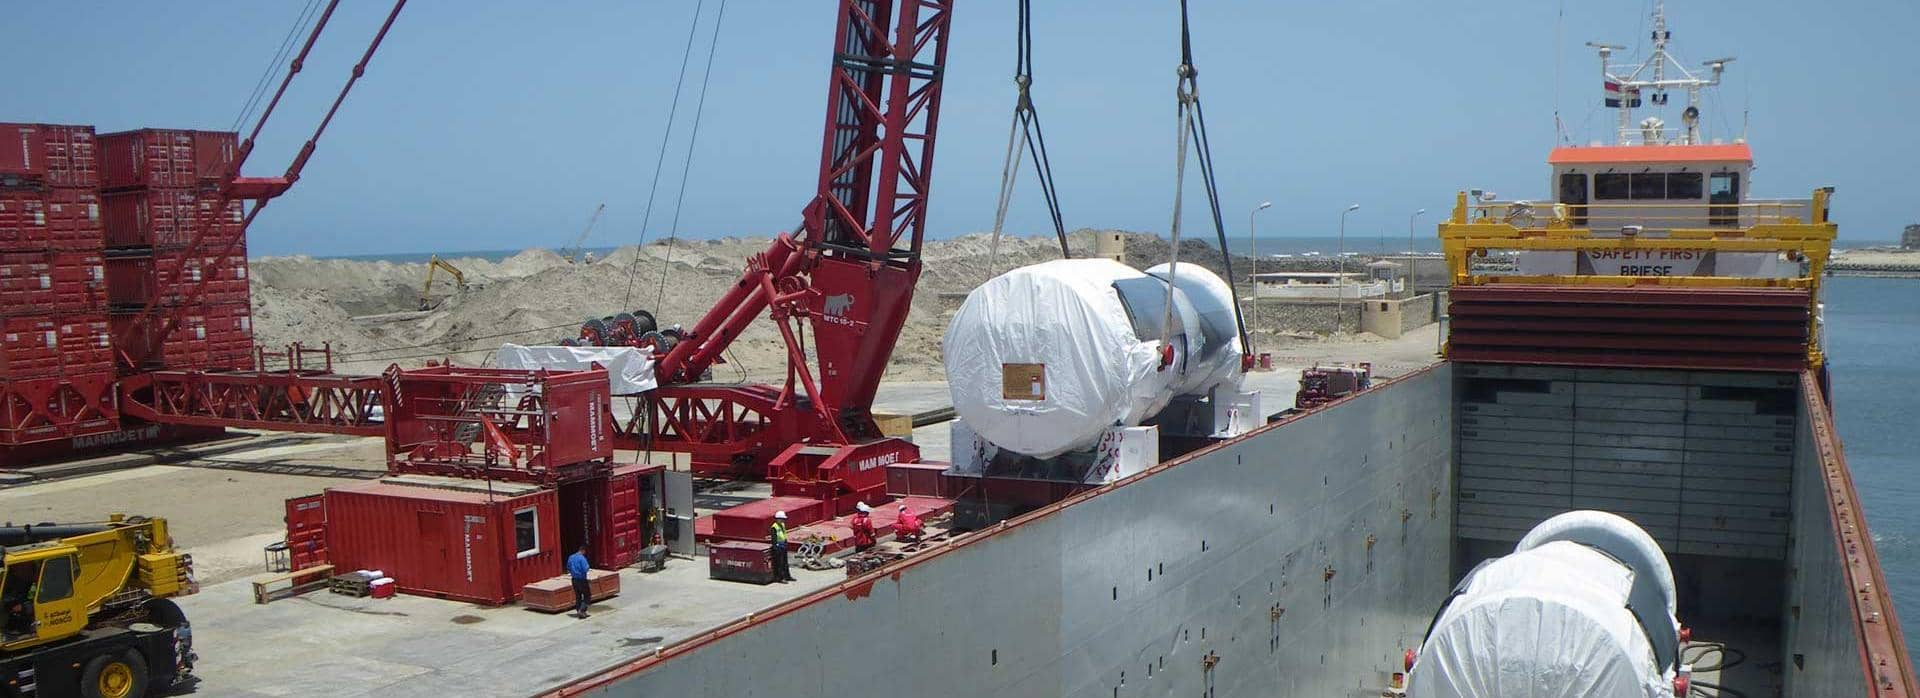 DB Schenker Finland | Global Logistics Solutions & Supply